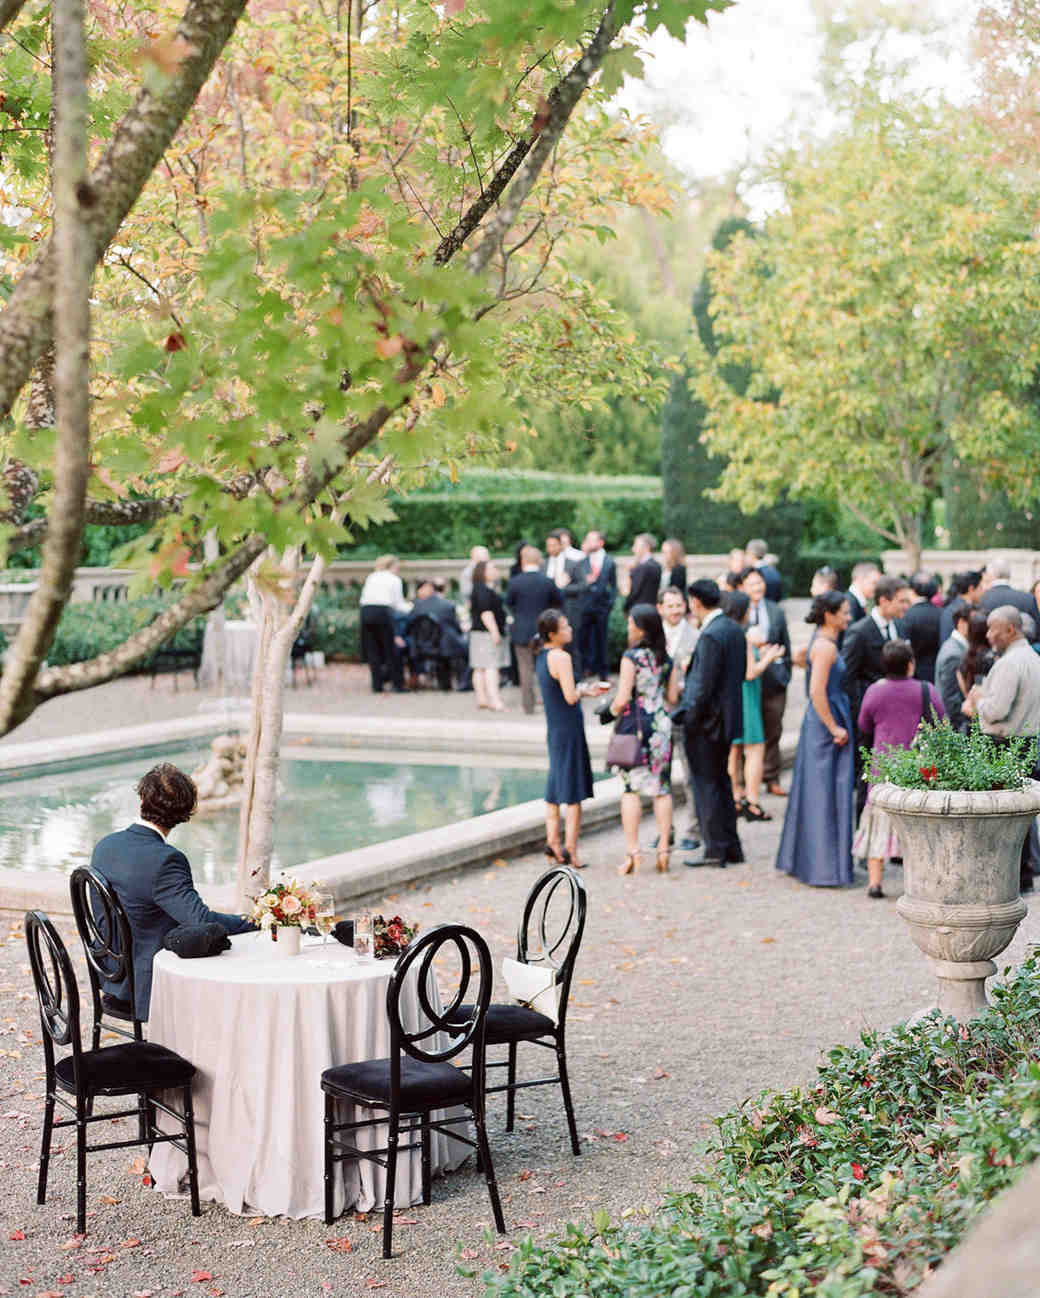 guests gather for cocktail hour in Beaulieu's Garden area